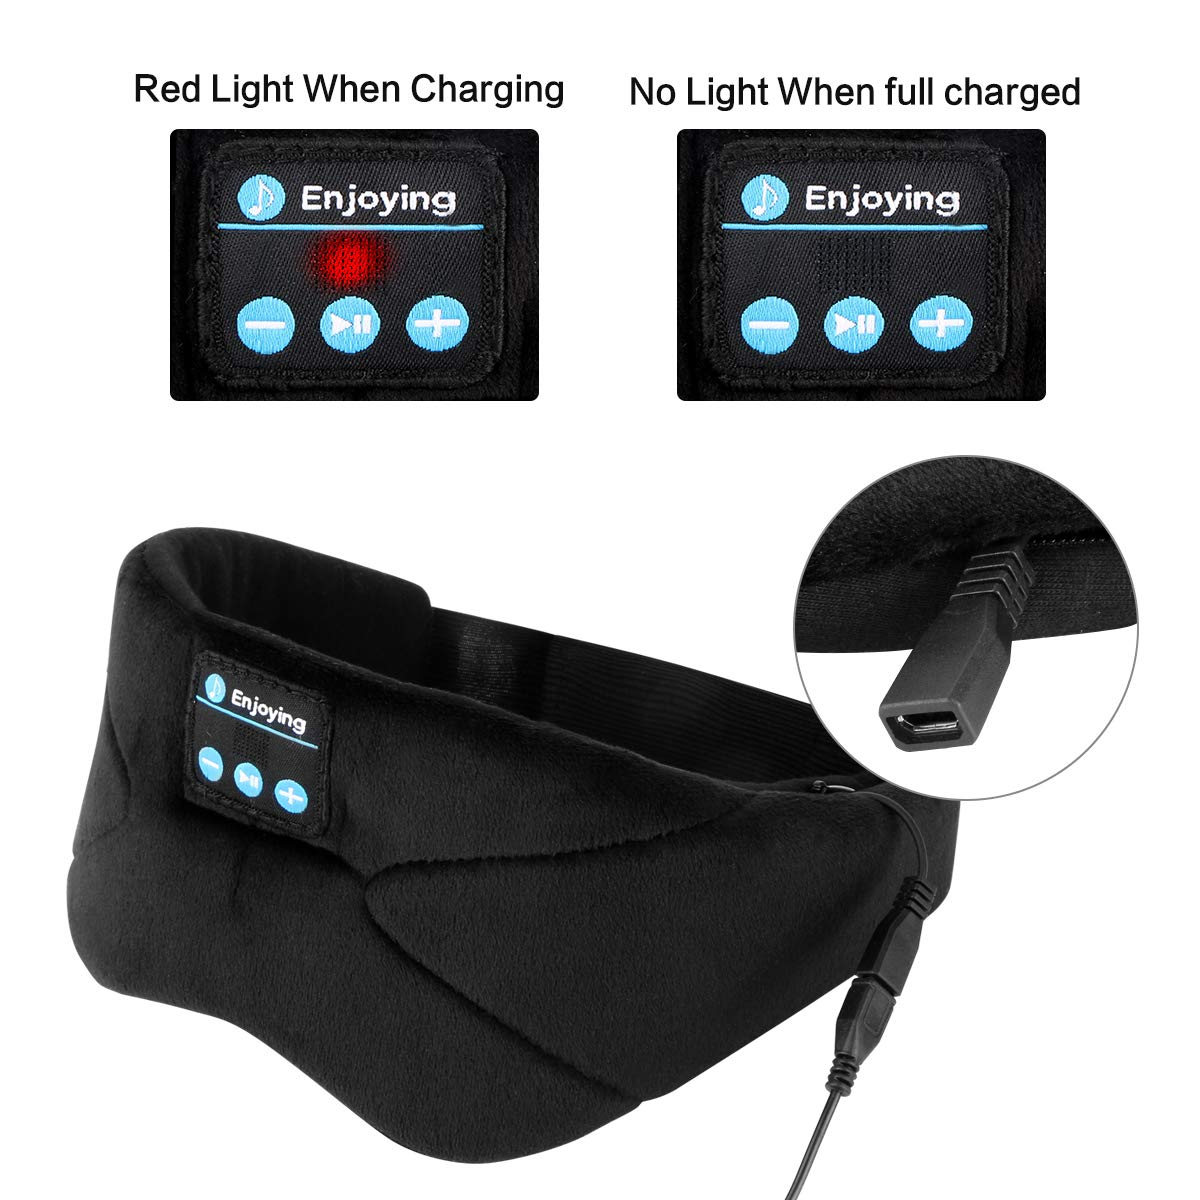 Sleep Headphones Bluetooth Eye Mask, Topoint Sleeping Mask Headphones Wireless Music Travel Eye Shades with Microphones, Black